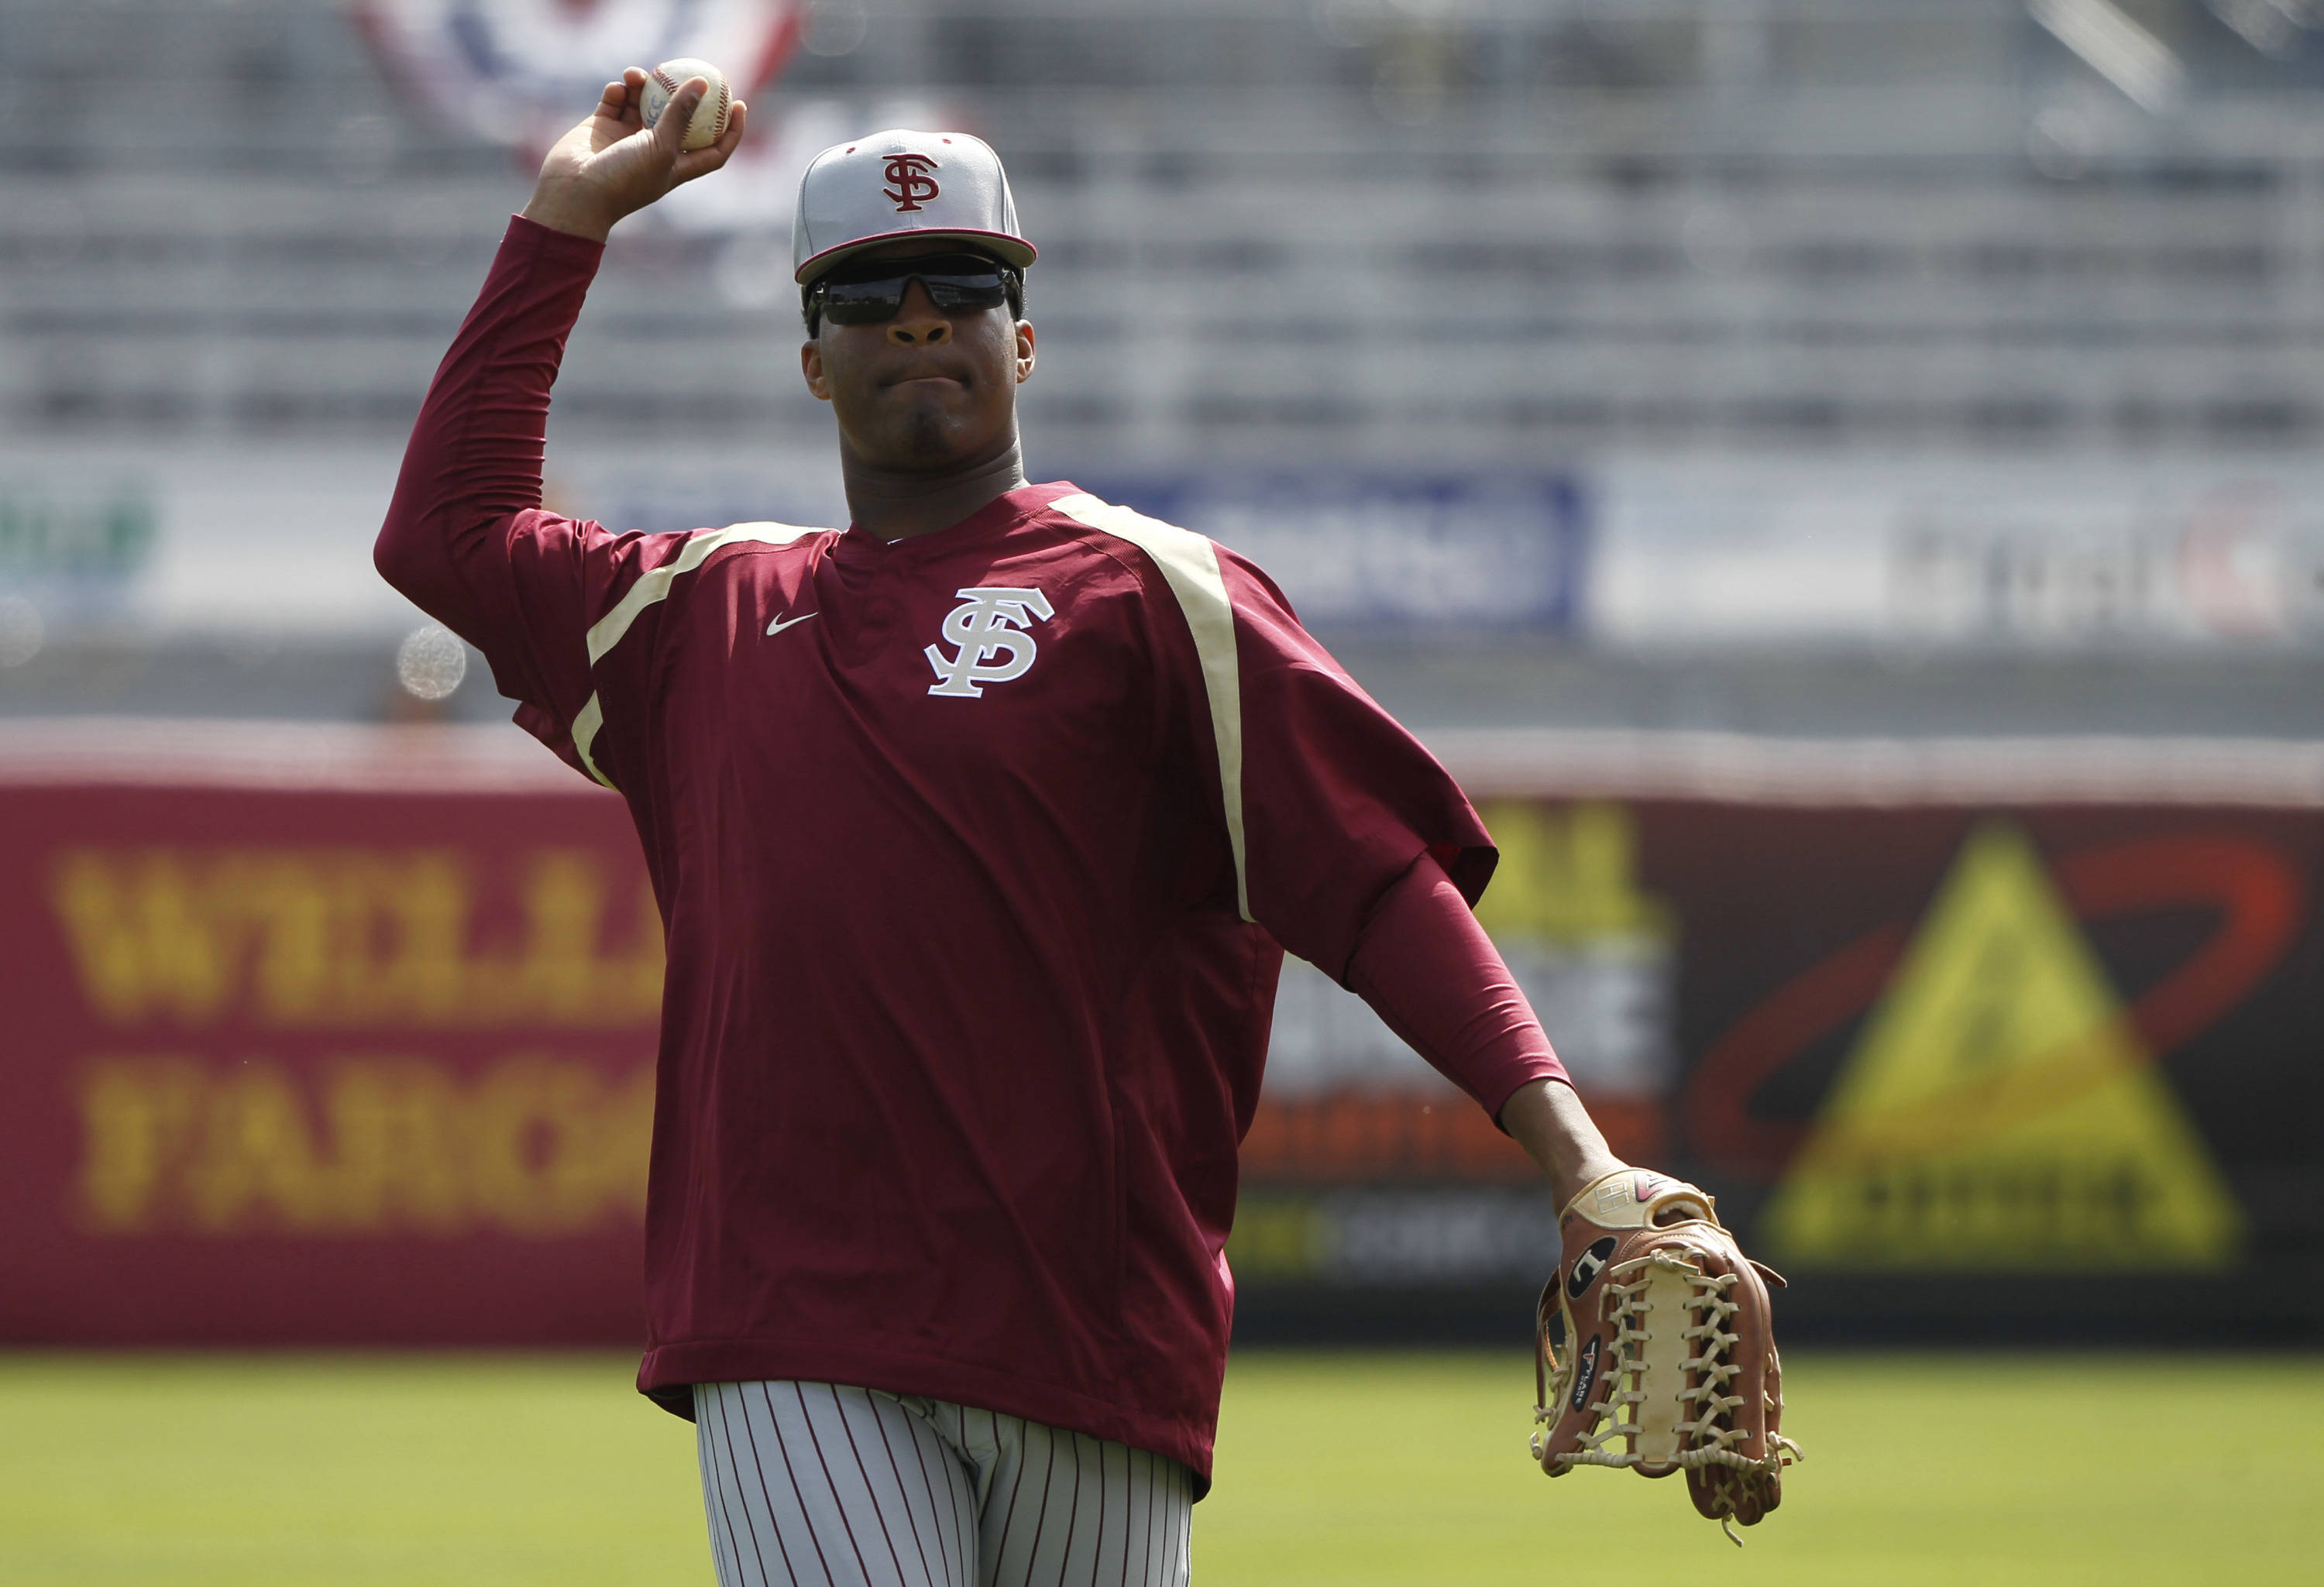 Feb 25, 2014; Tampa, FL, USA; Florida State Seminoles pitcher/outfielder Jameis Winston (44) works out prior to the game against the New York Yankees at George M. Steinbrenner Field. Mandatory Credit: Kim Klement-USA TODAY Sports